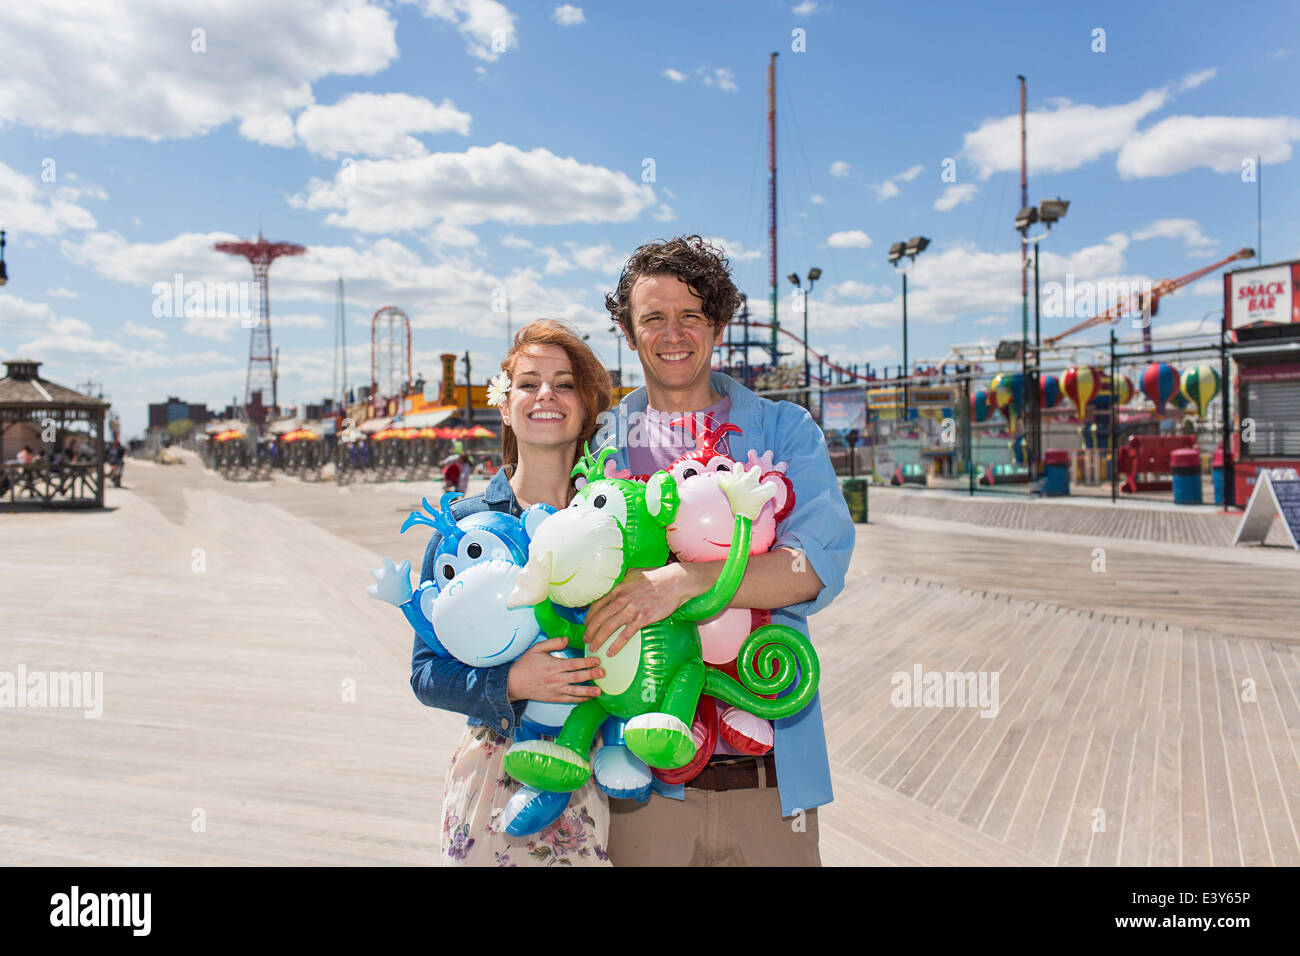 Portrait of couple with inflatable monkeys at amusement park - Stock Image